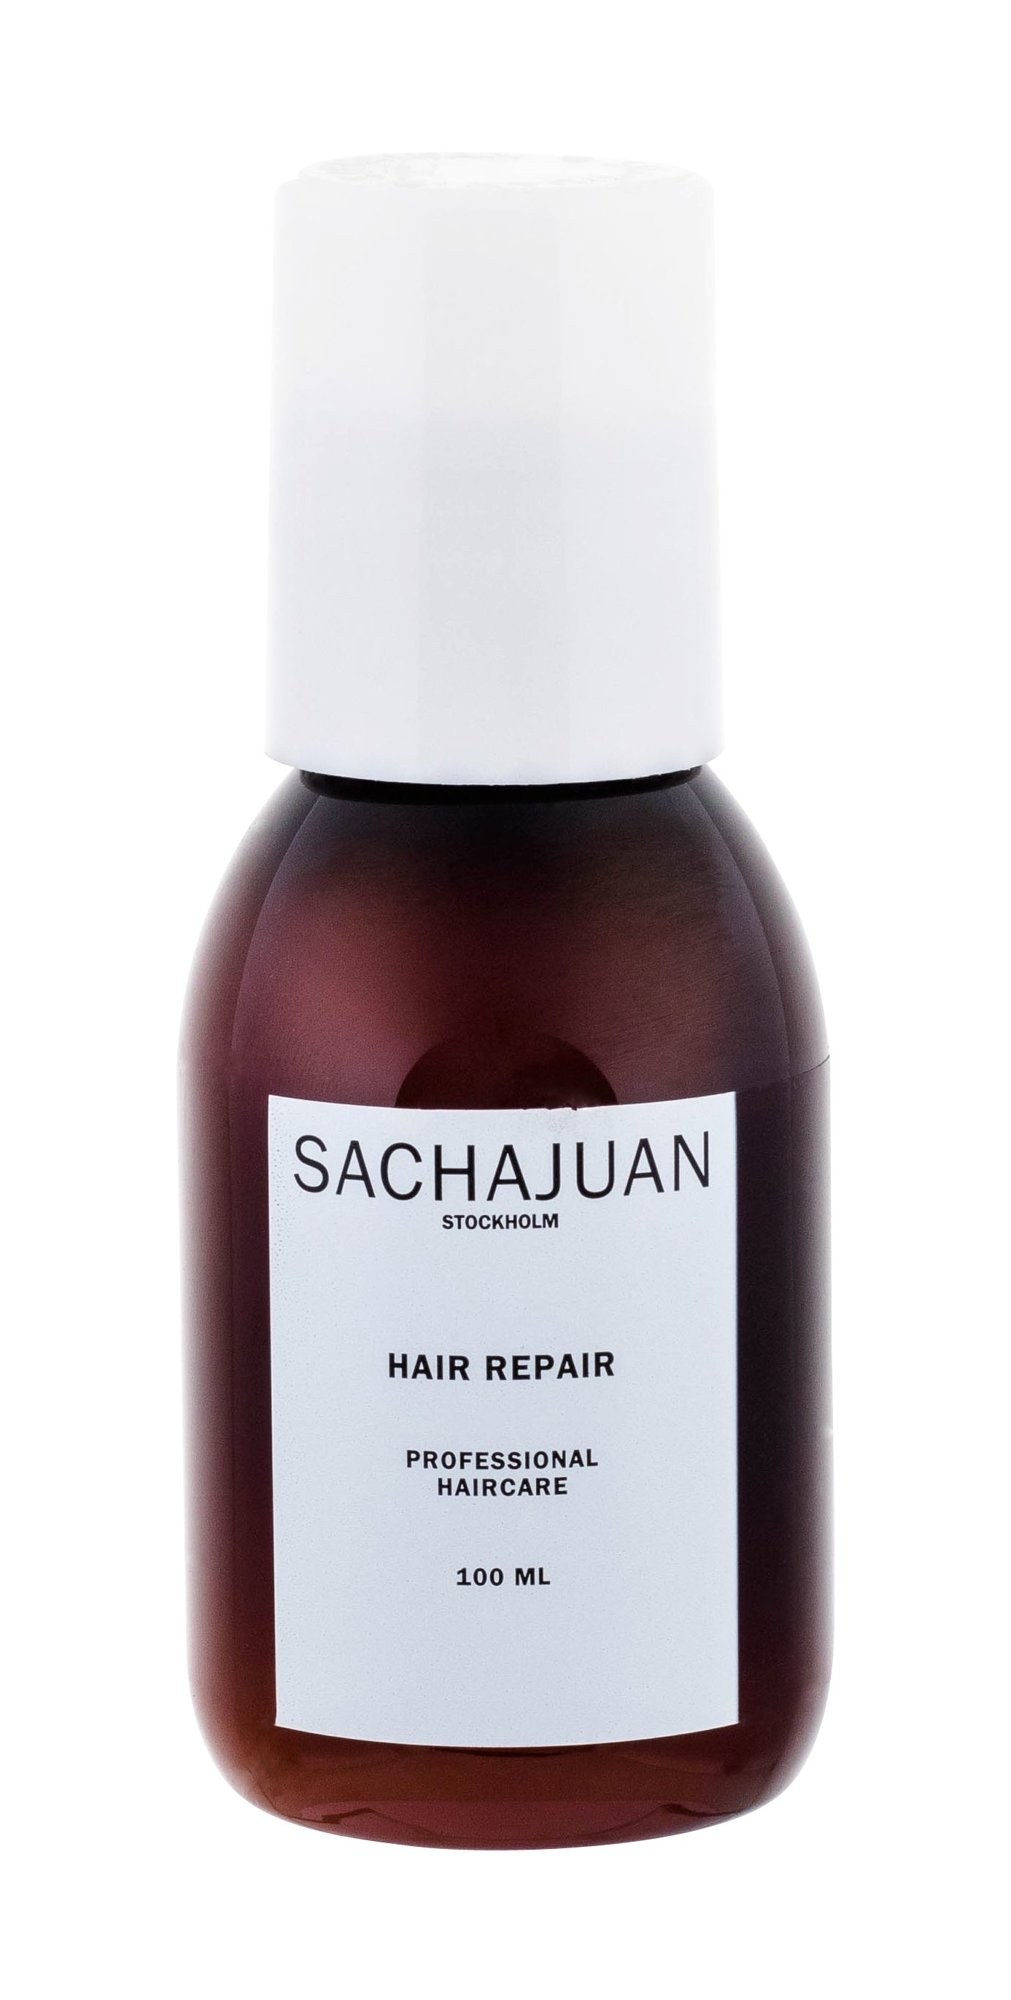 Sachajuan Treatment Hair Oils and Serum 100ml  Hair Repair